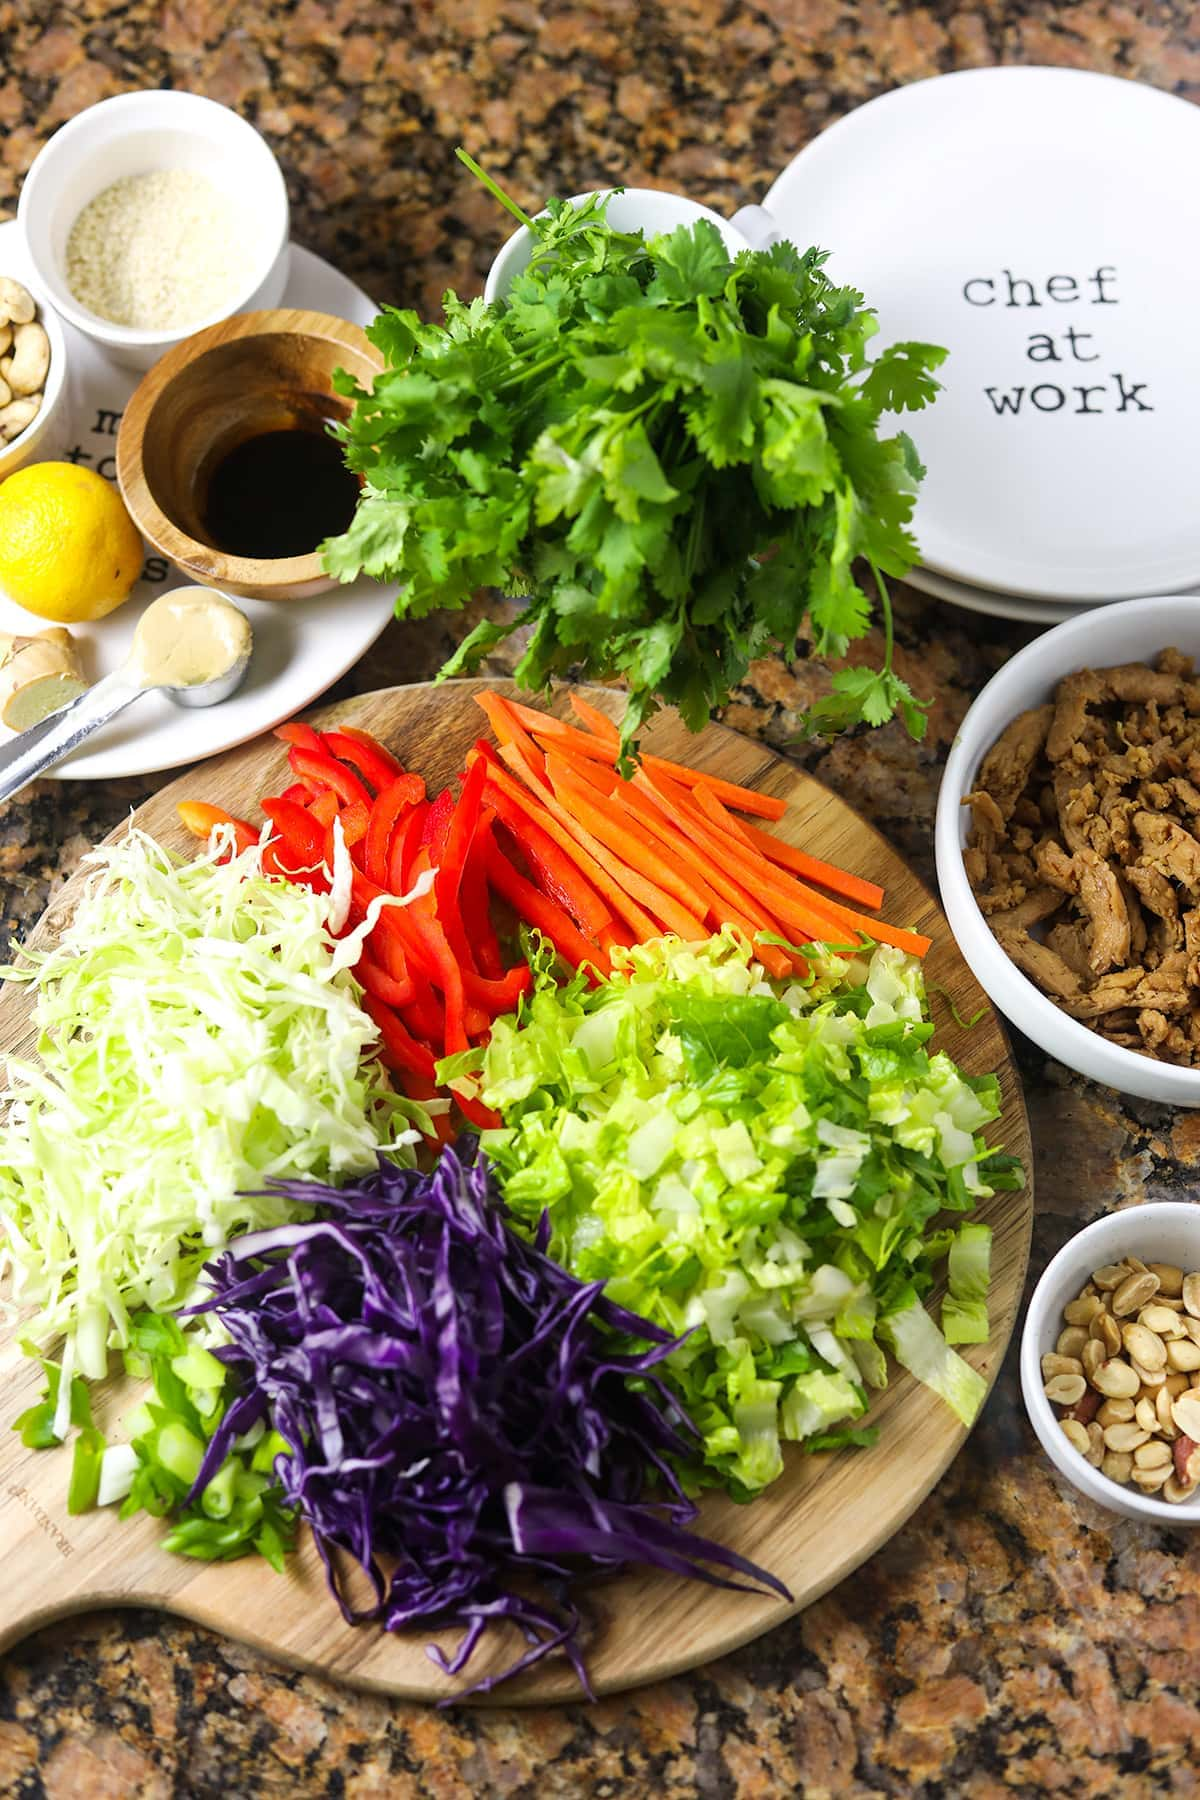 Overlay of asian salad ingredients, cabbages thinly sliced, romaine lettuce, marinade, on cutting board